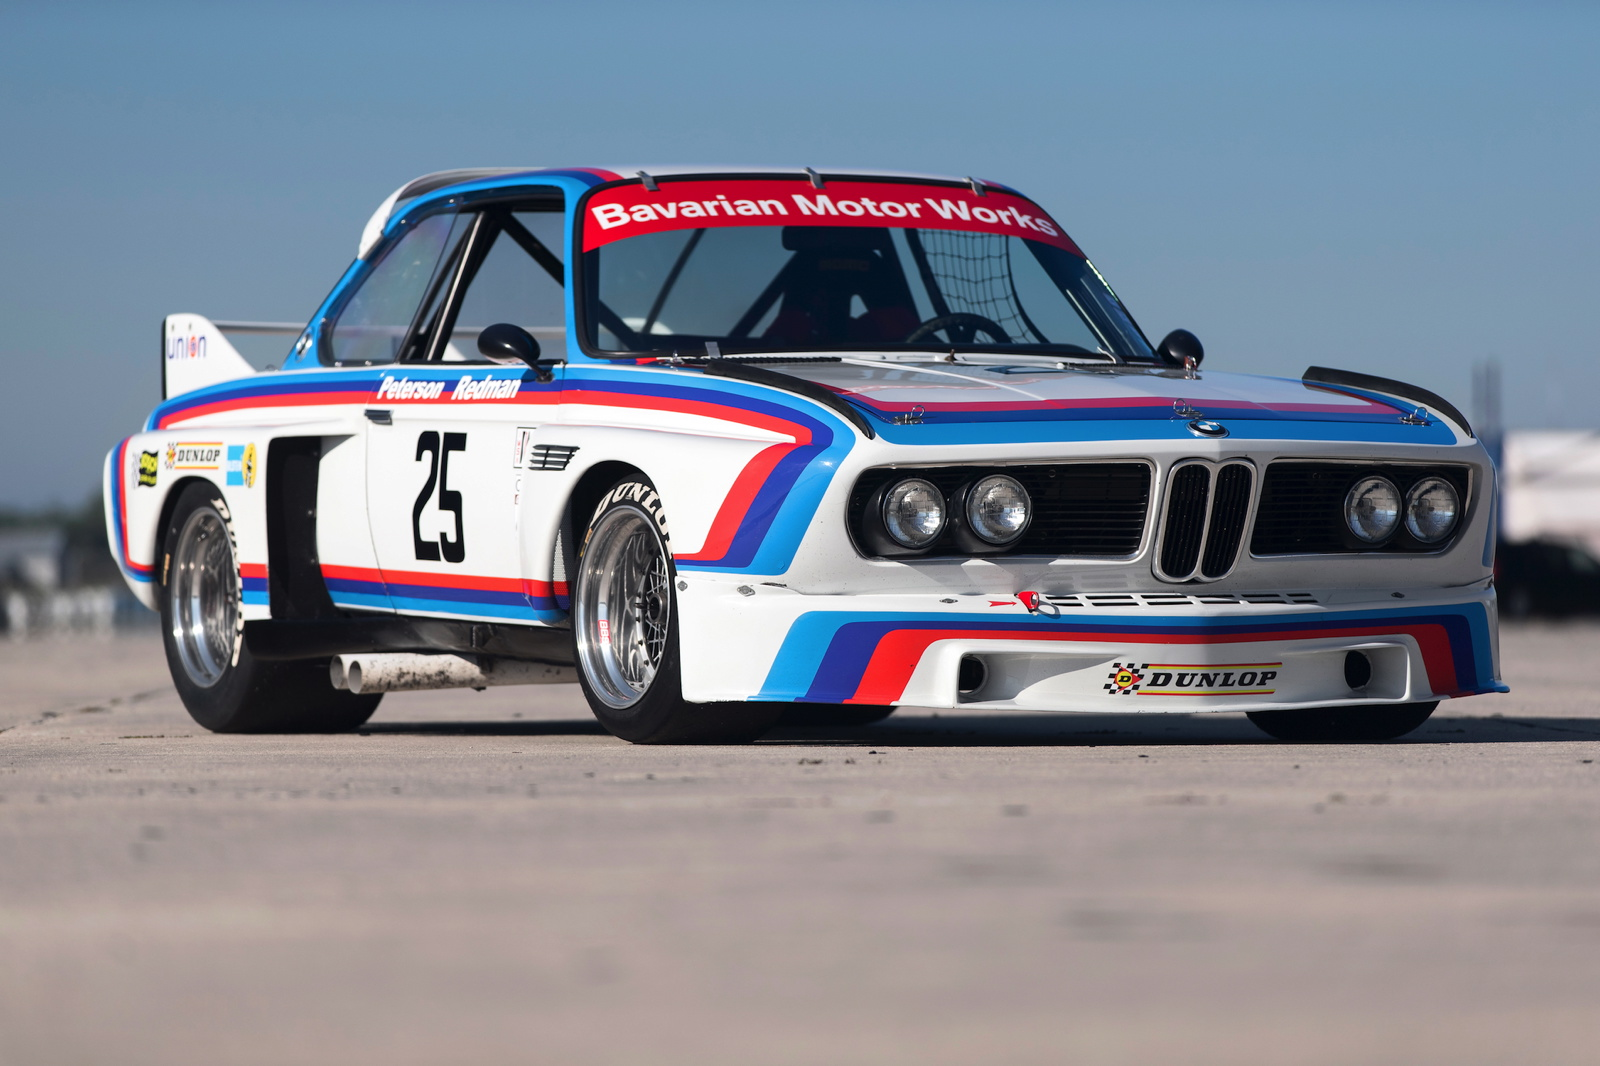 Bmw Celebrates 40th Anniversary Of First Us Race Win At